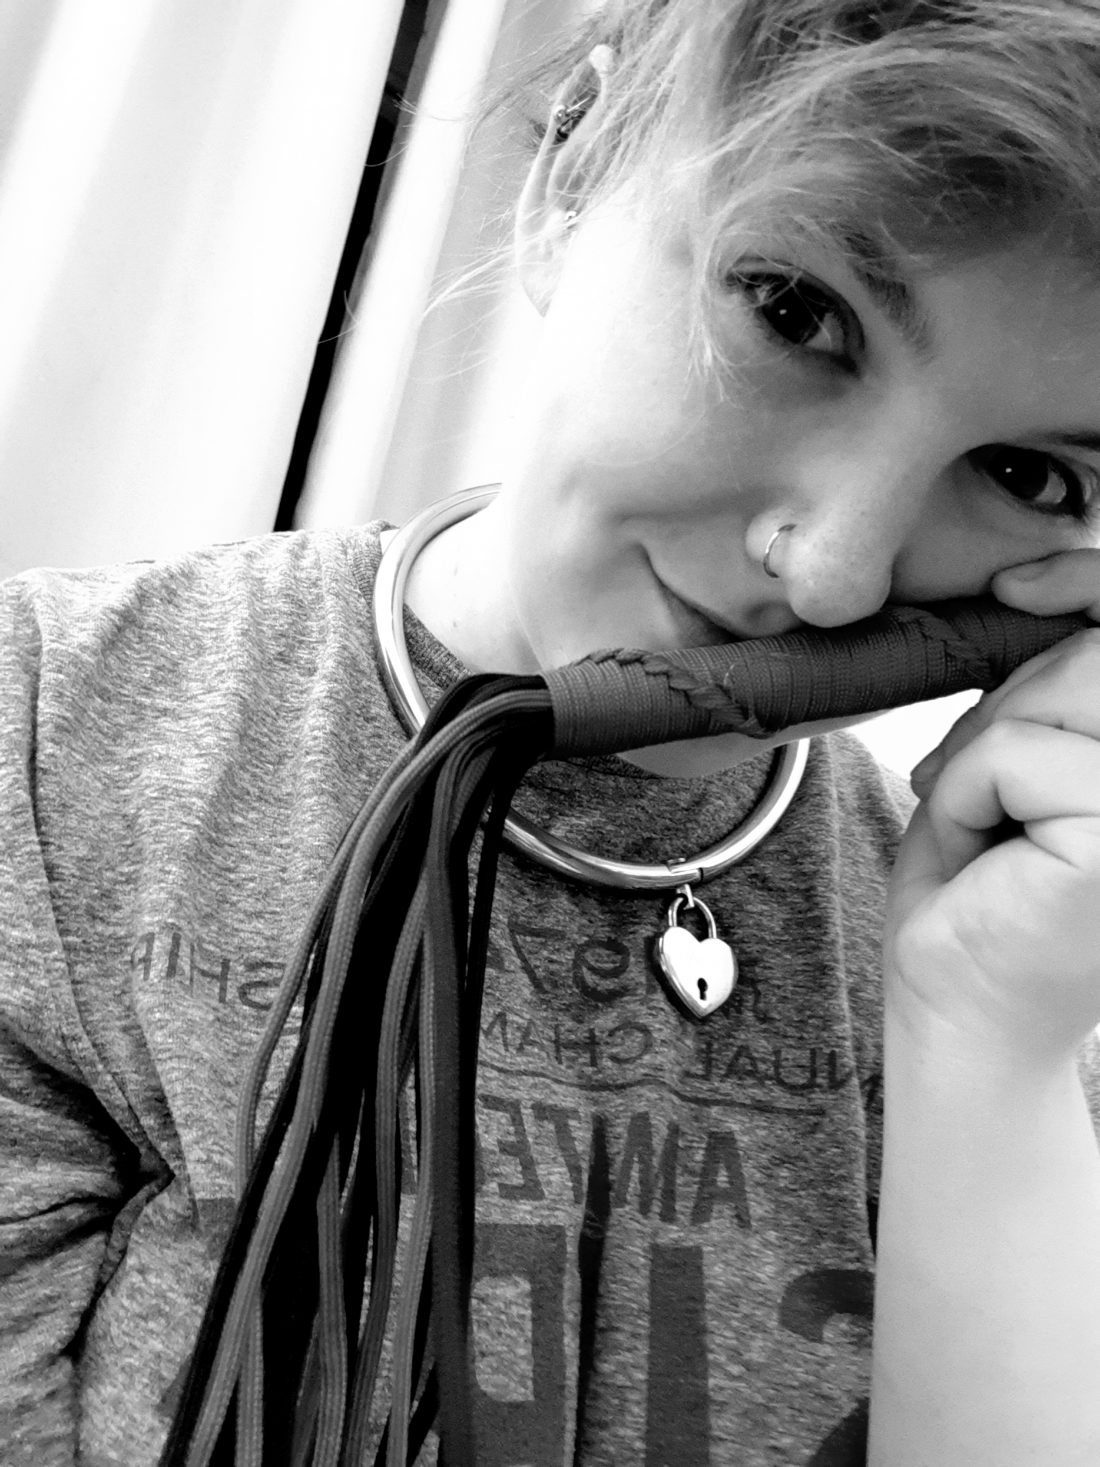 Greyscale photo of Morgan, a white nonbinary human with piercings, holding a mini flogger and smirking at the camera to suggest they're in topspace